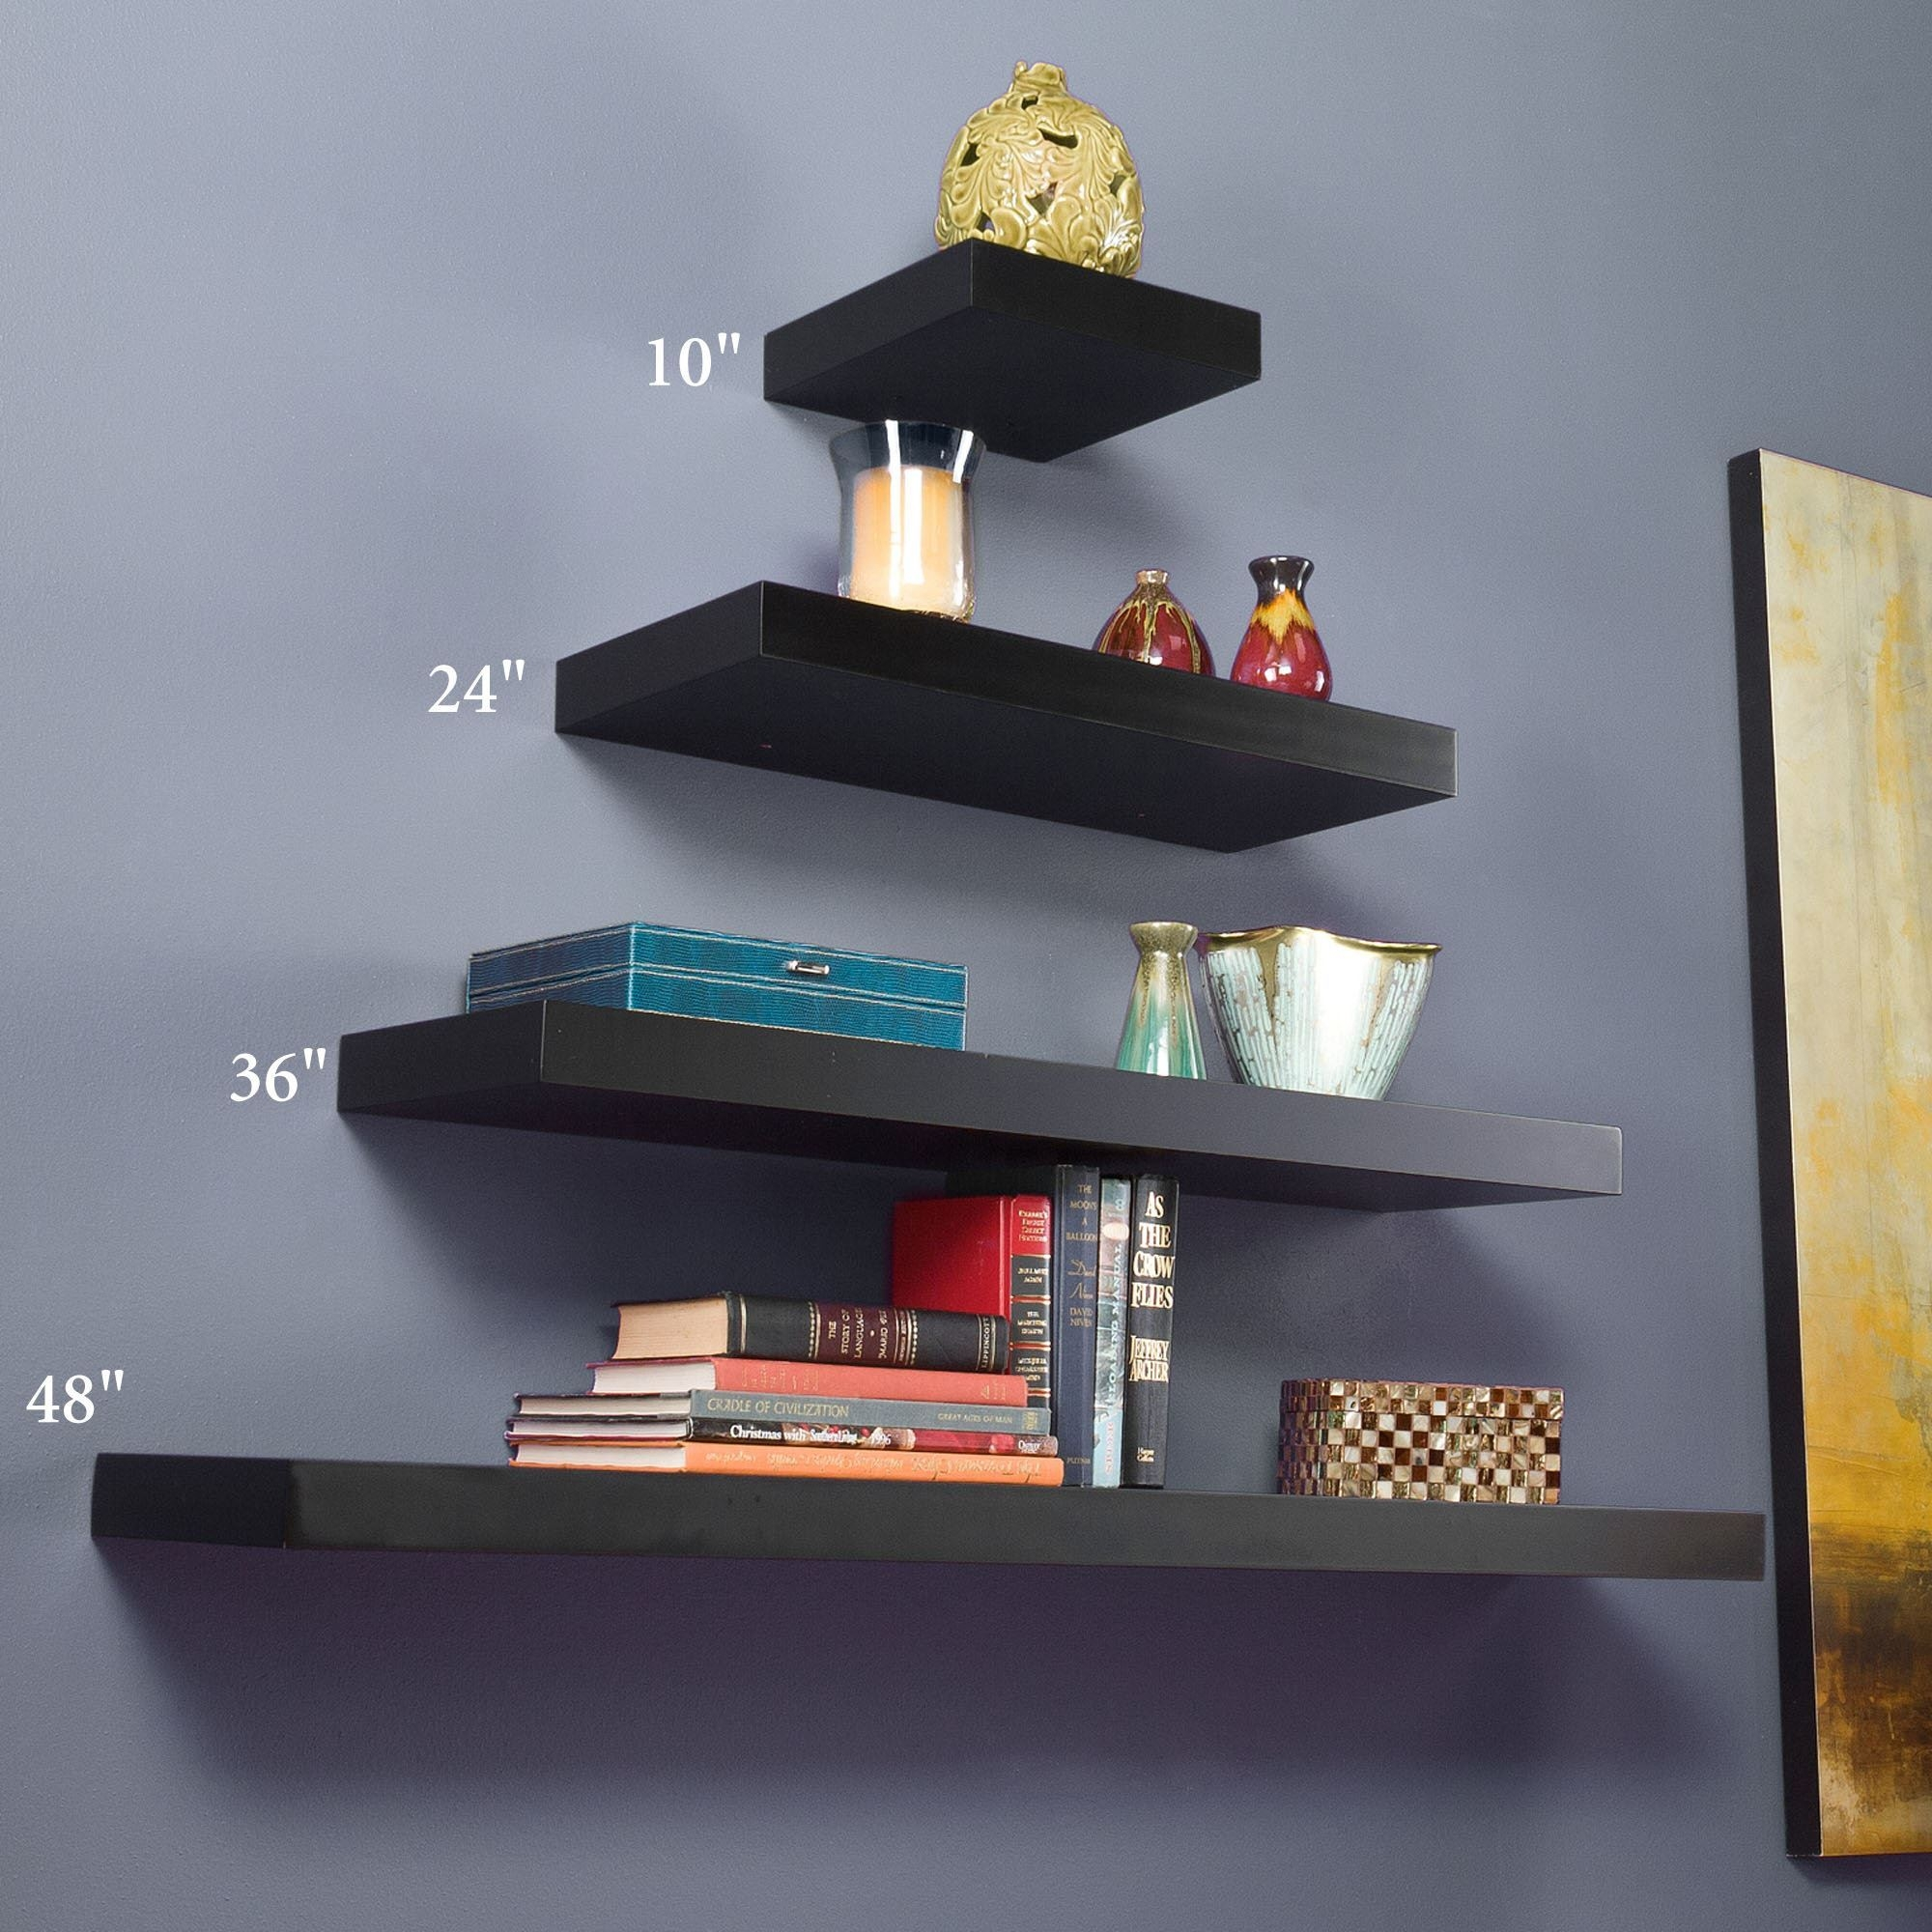 Manhattan Black Wooden Floating Wall Shelves With Floating Wall Shelves (#11 of 12)